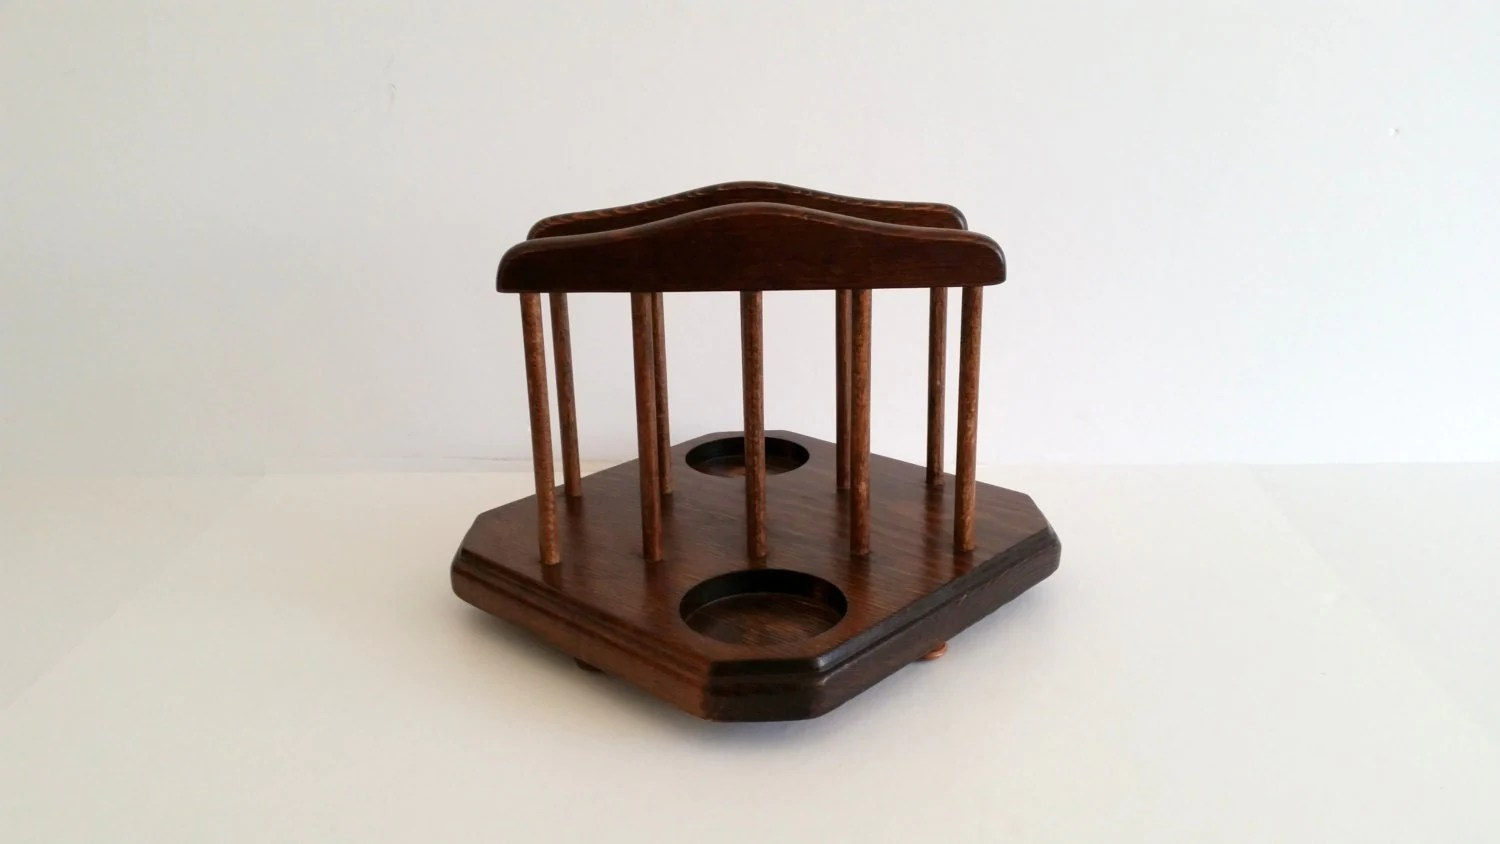 Salt Pepper Holder Wood Napkin Holder And Spaces For Salt And Pepper Shakers